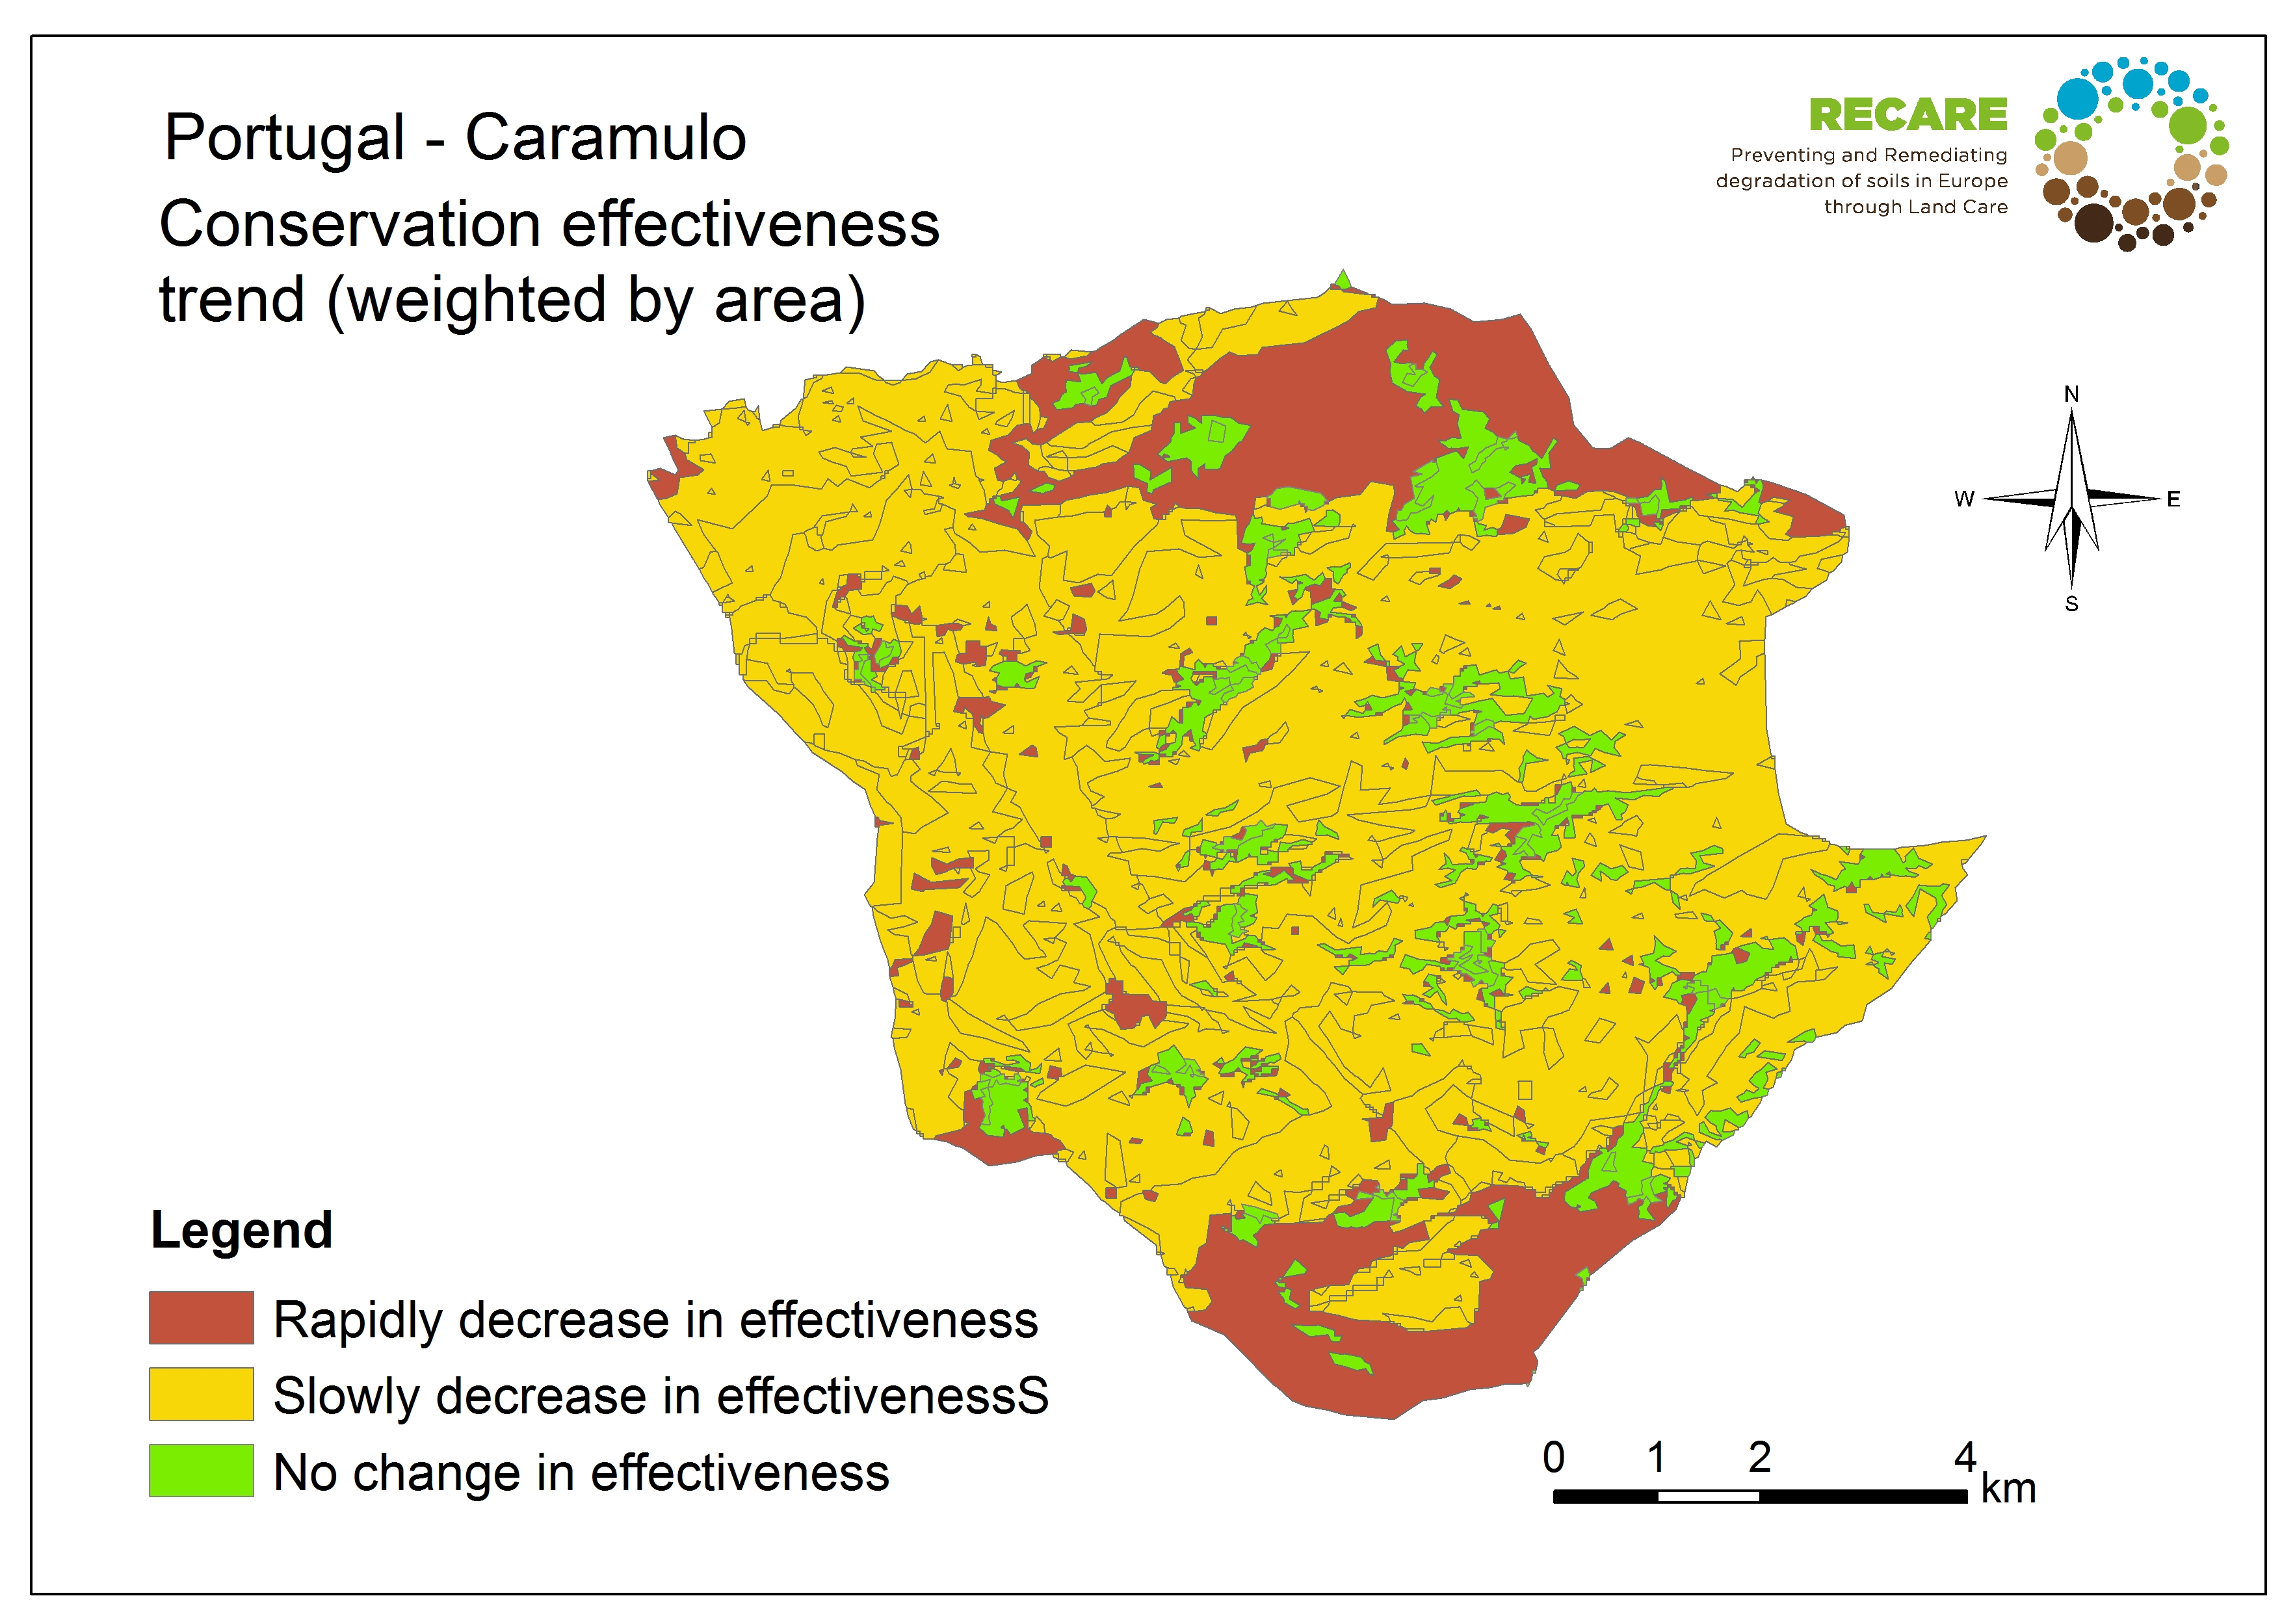 Portugal Caramulo conservation effectiveness trend